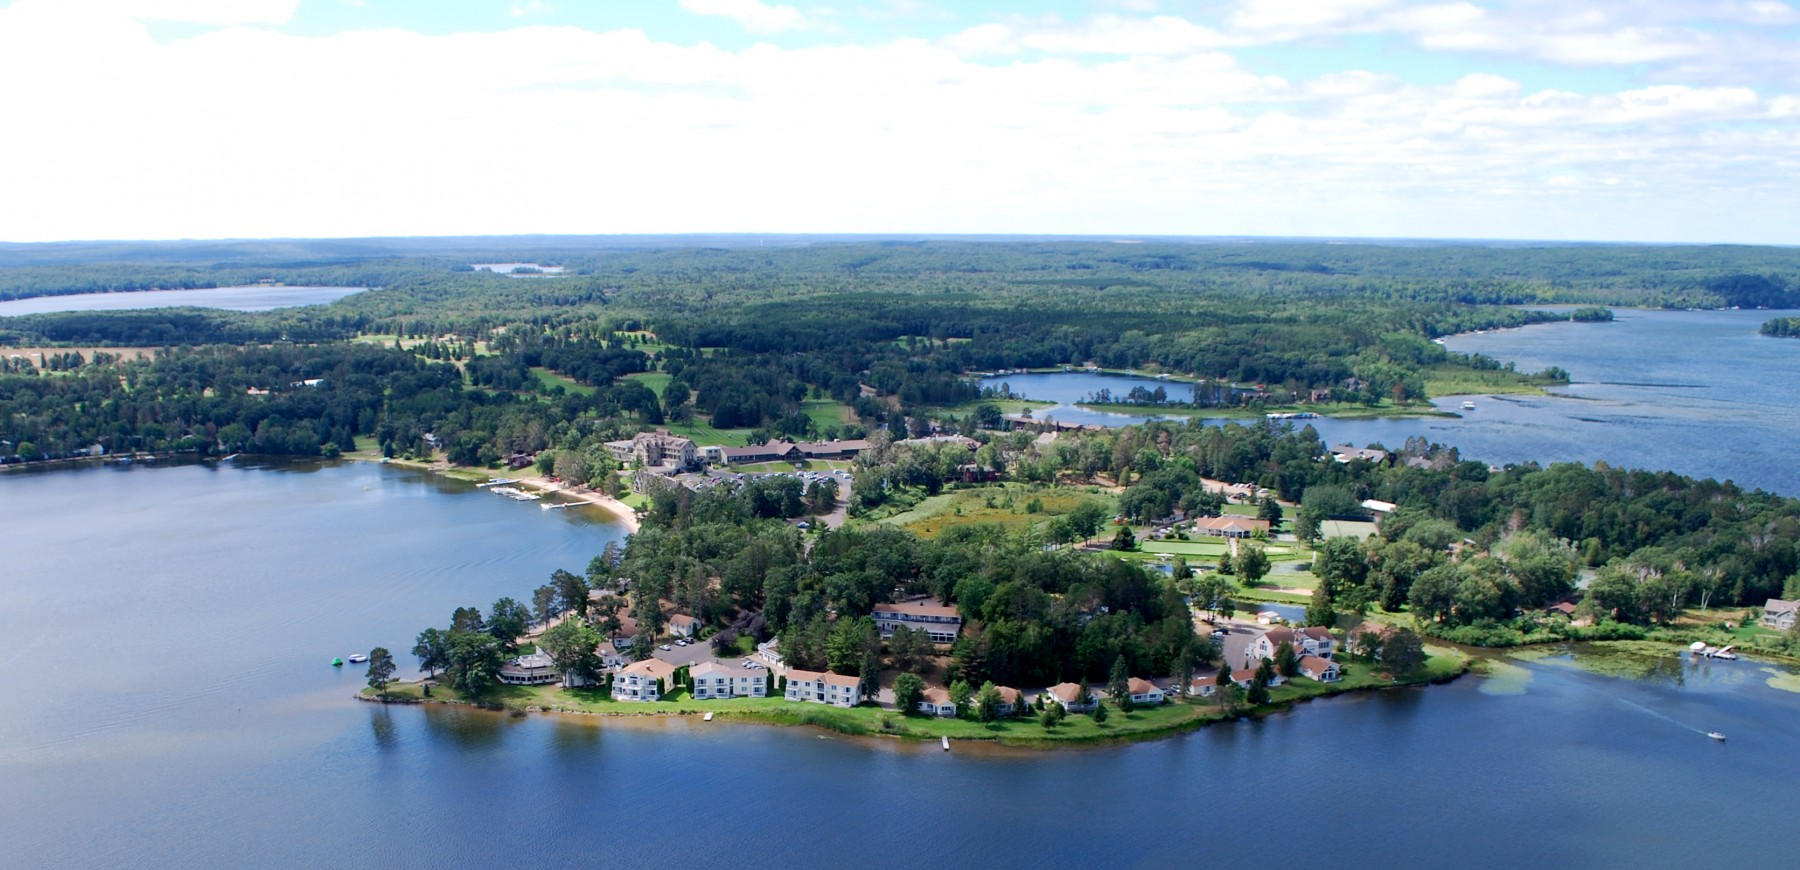 Aerial view of Madden's on Gull Lake